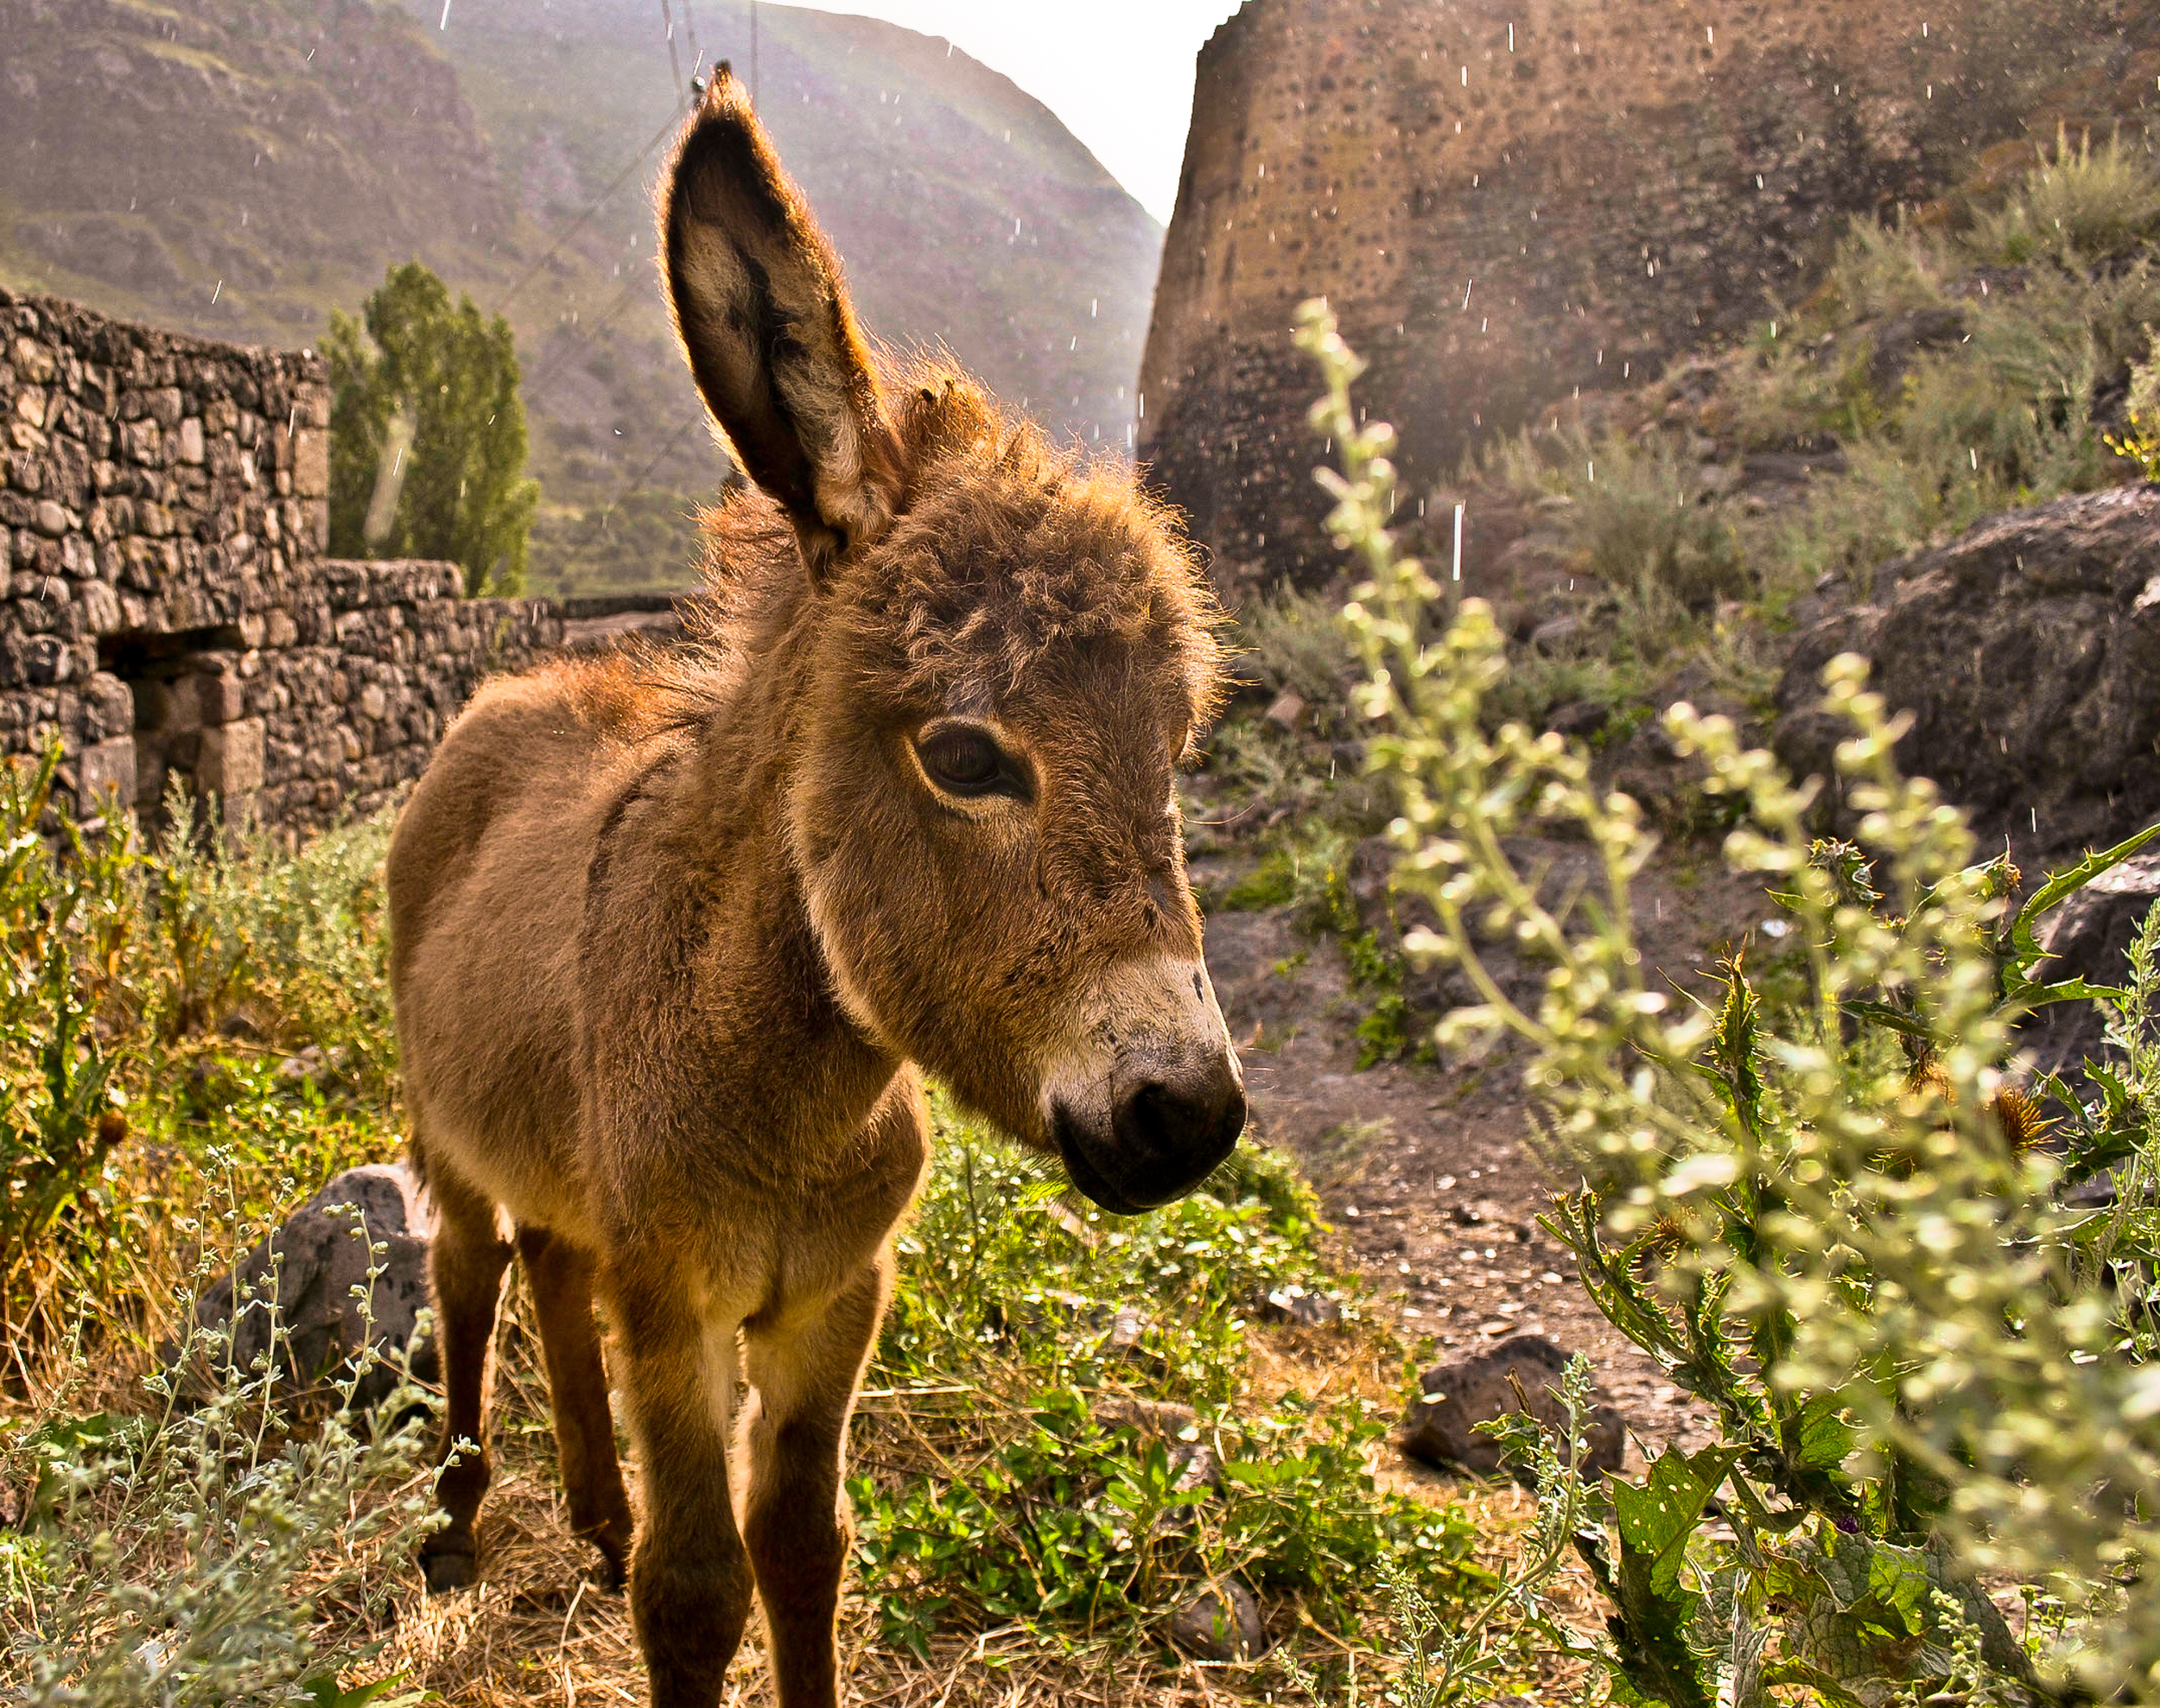 A young donkey wandering the ruins of an ancient fortress.